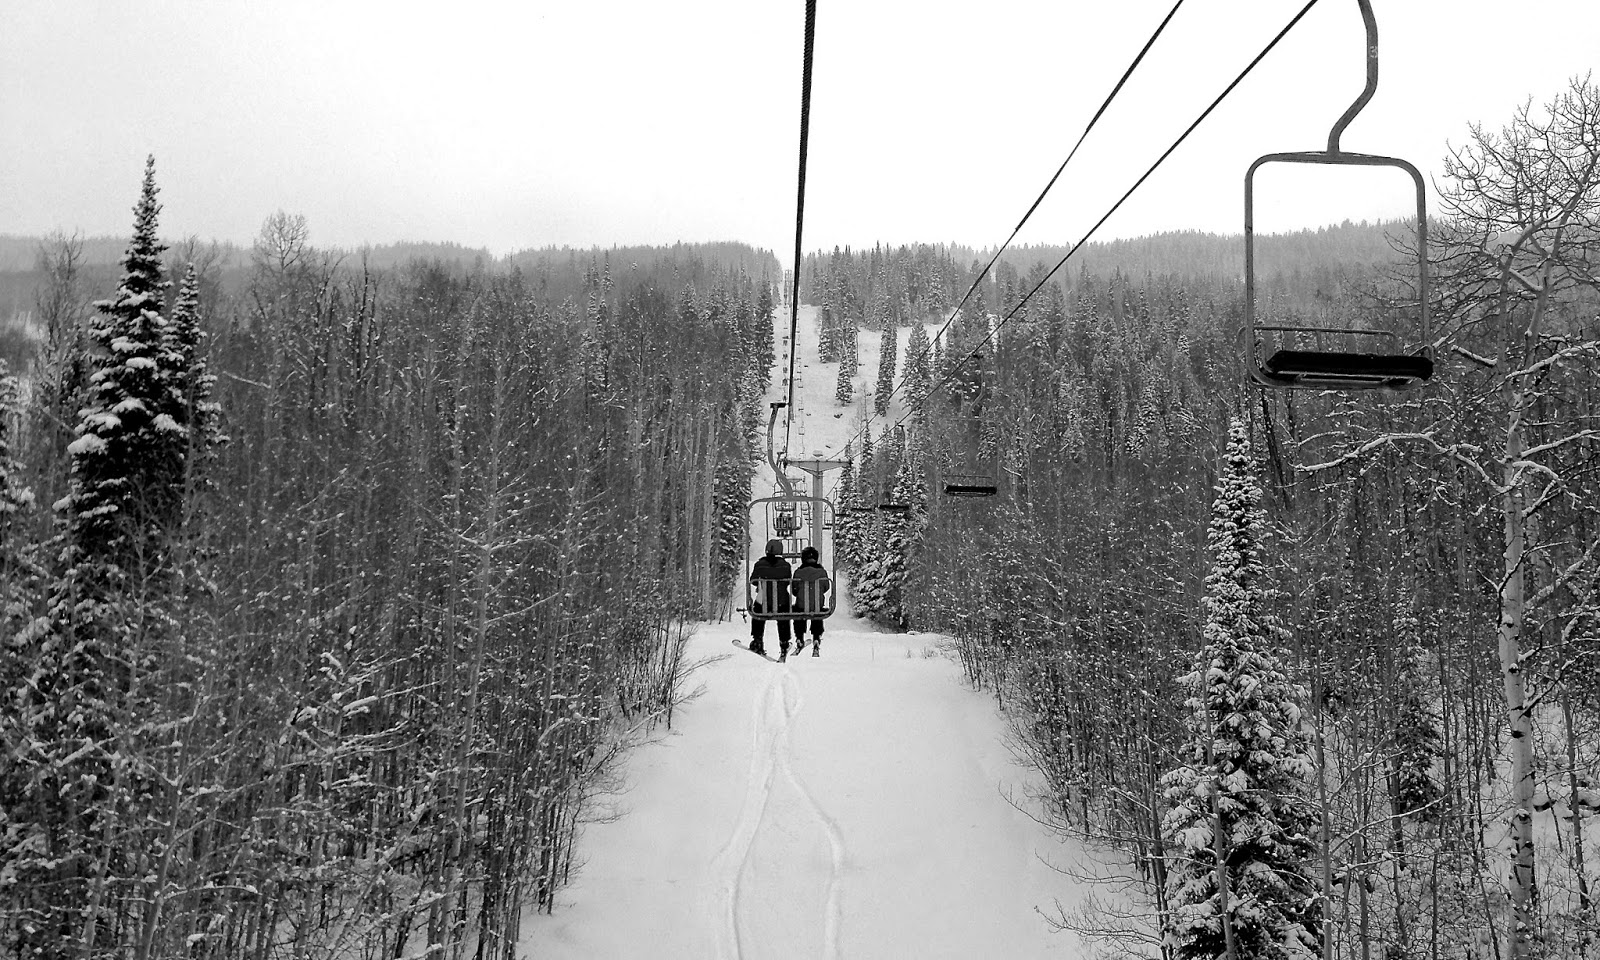 Ski lift at Powderhorn, in Colorado